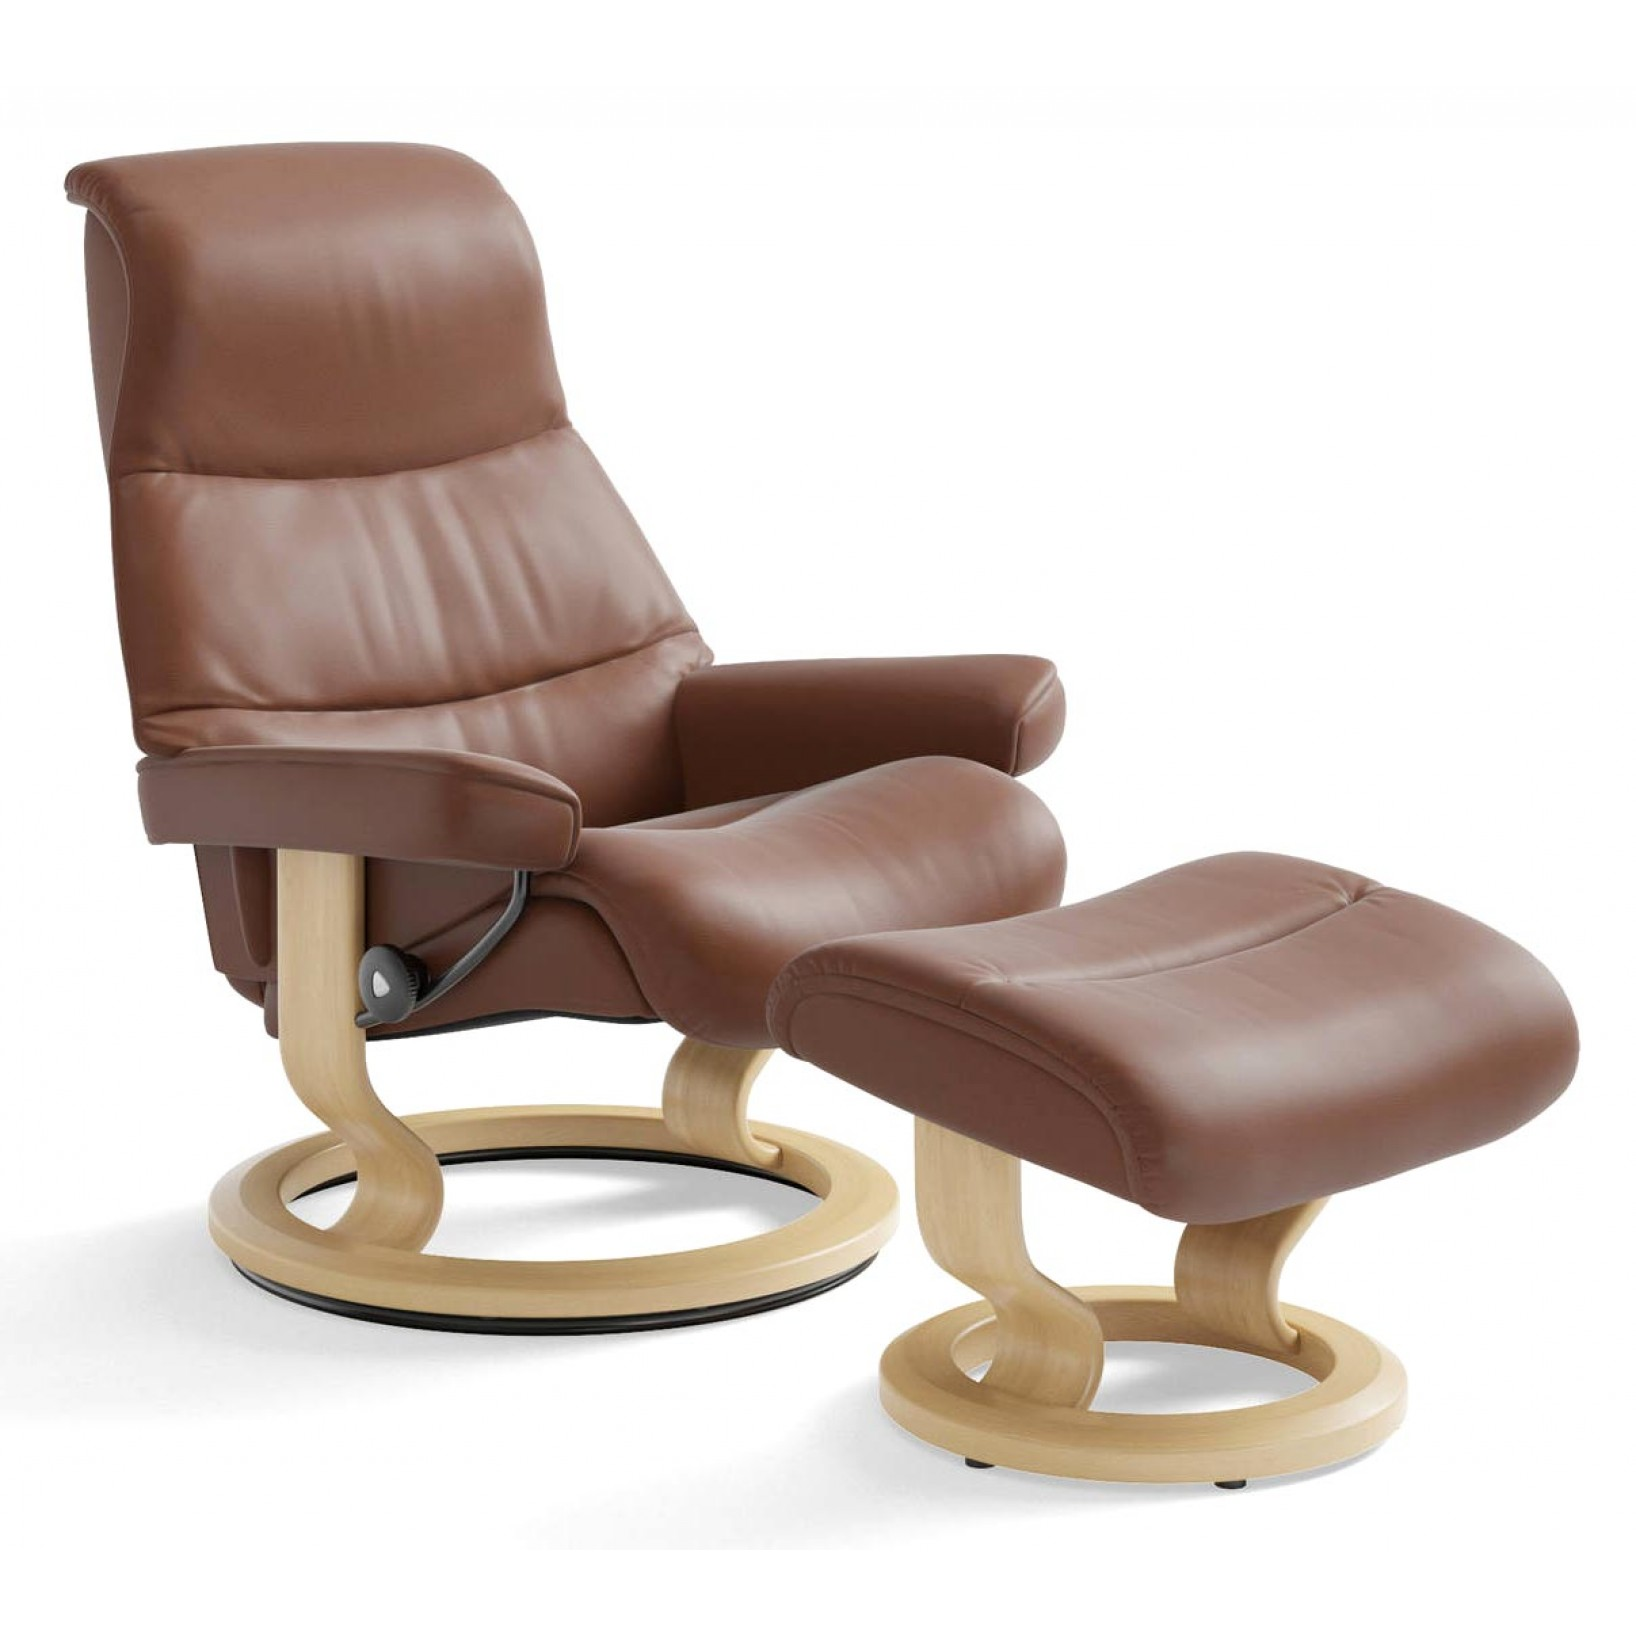 Stressless View Classic Recliner Ottoman From 3